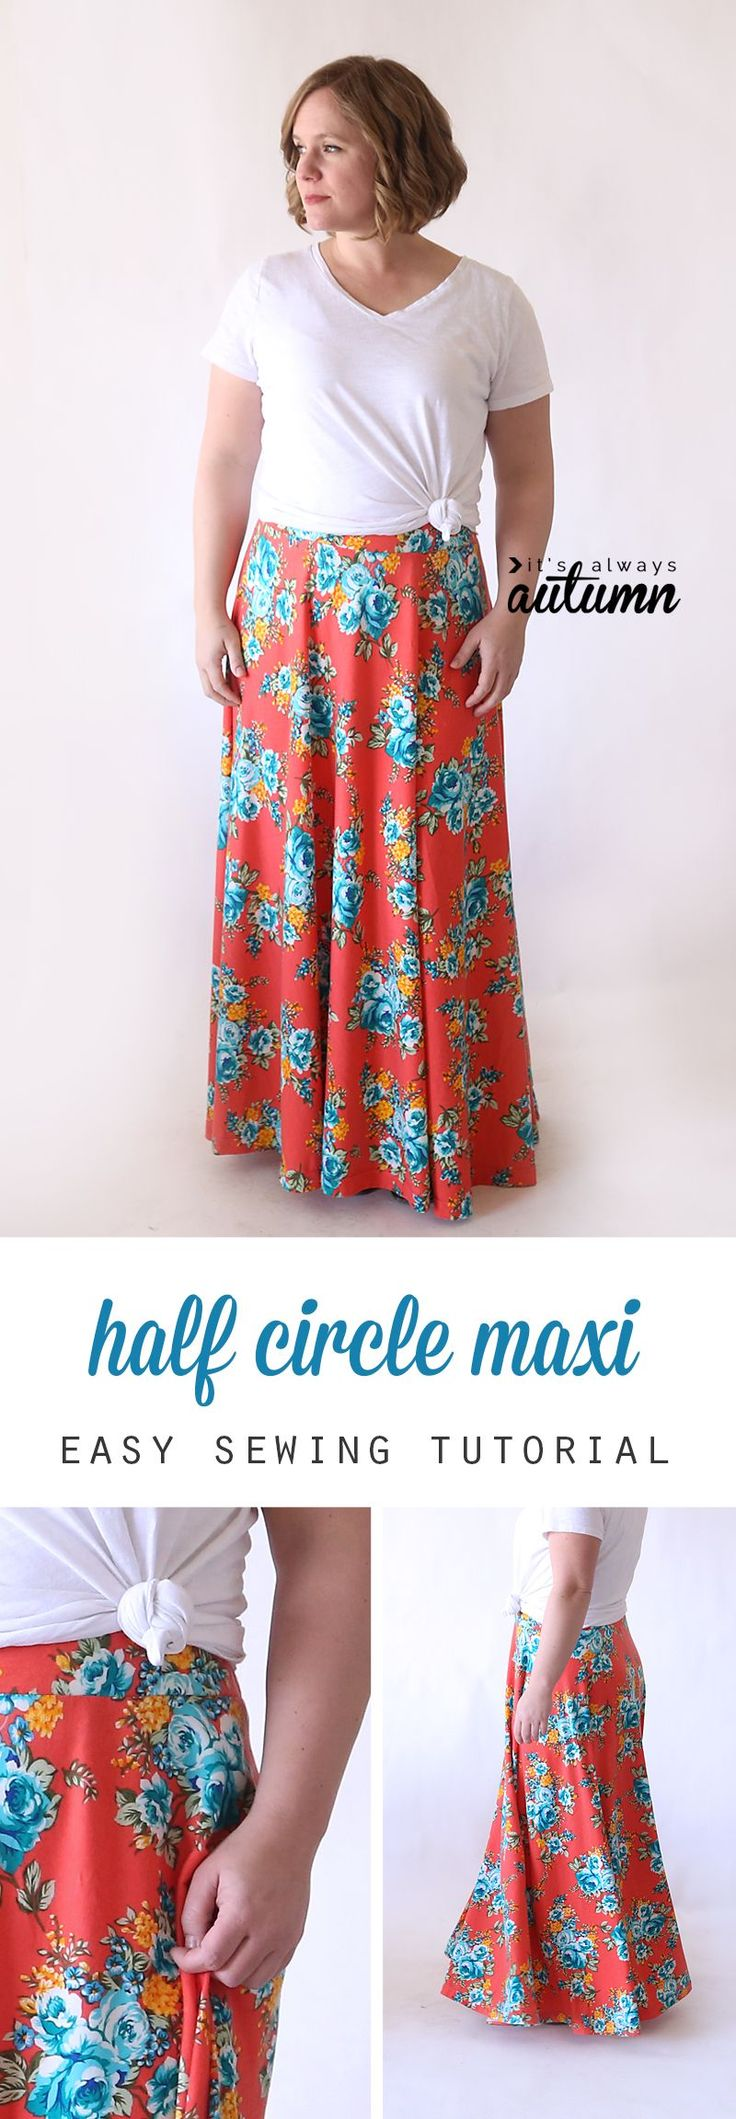 How to make a full, flattering DIY maxi skirt without a pattern. Easy sewing tutorial.